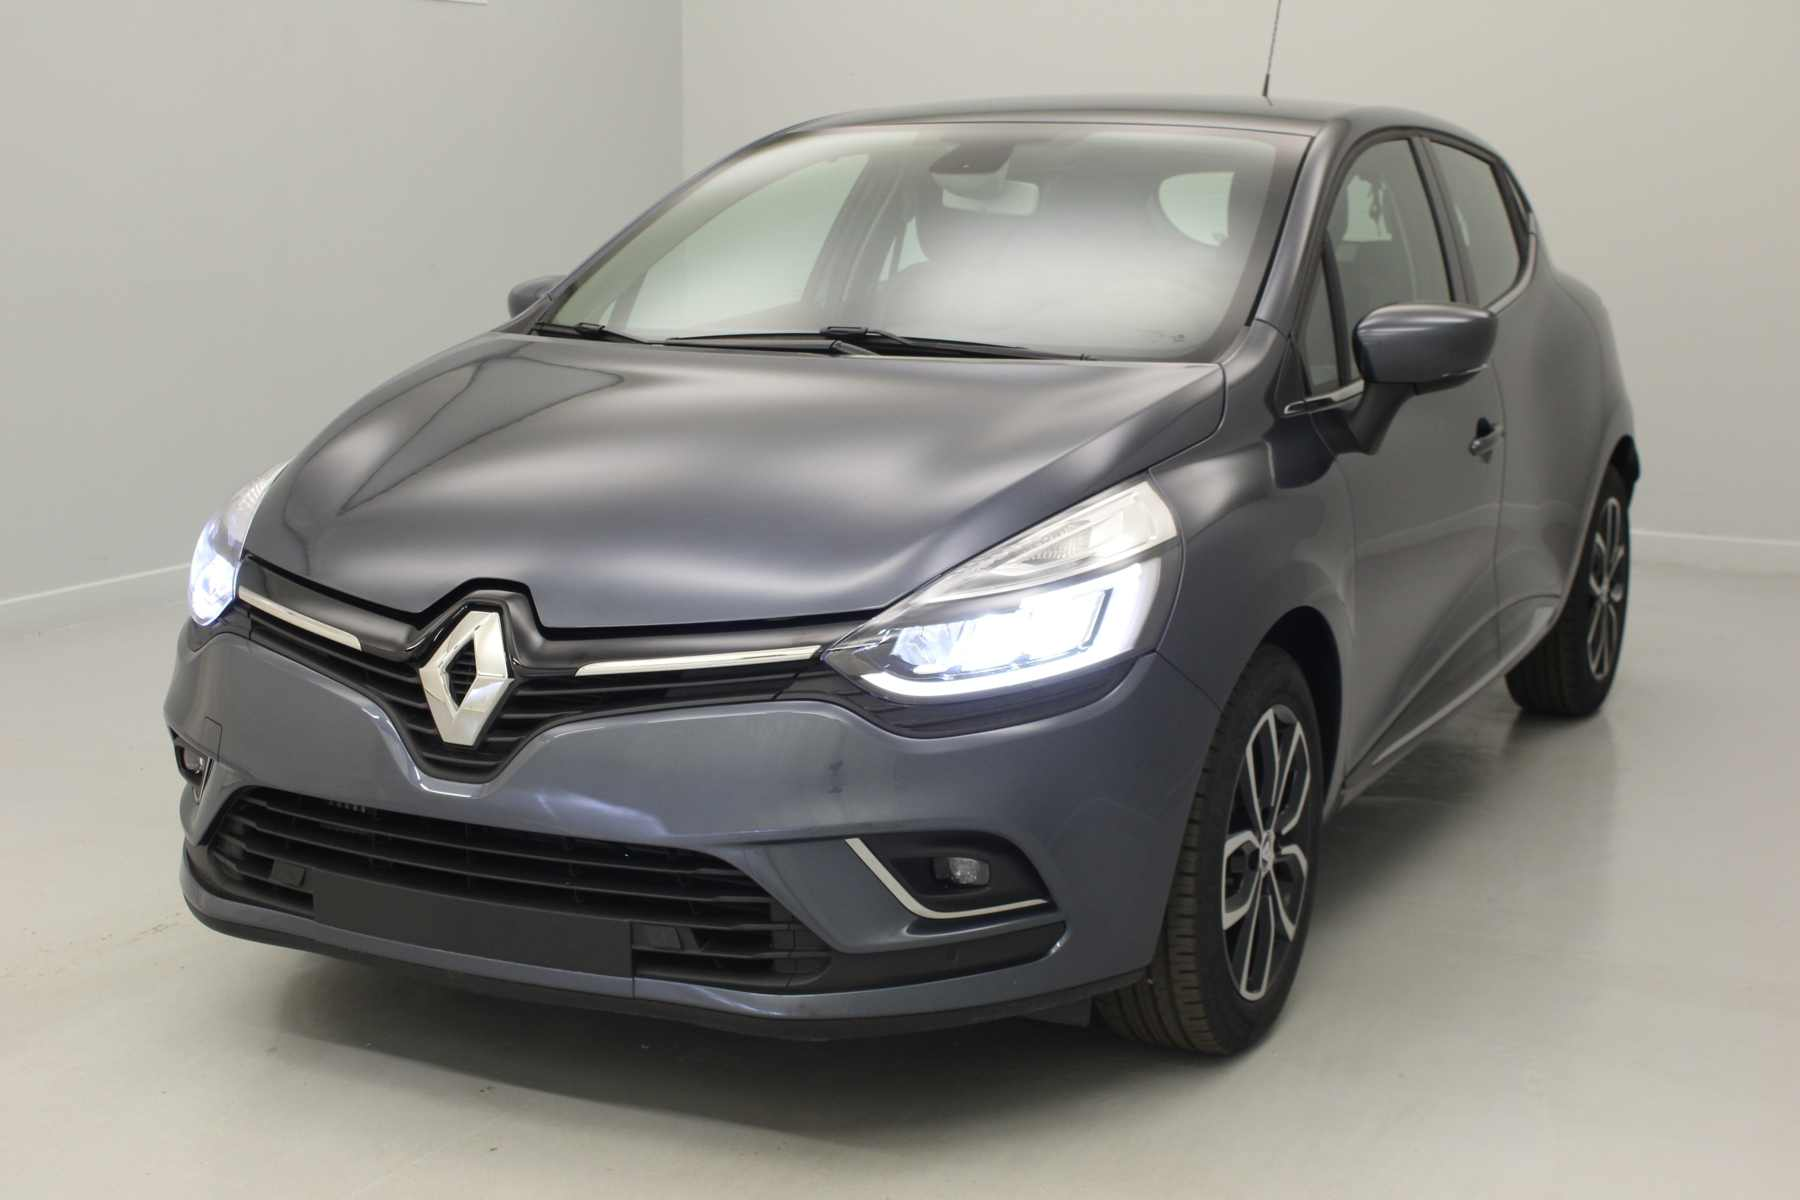 RENAULT Clio IV Nouvelle dCi 90 Energy Intens Gris Titanium + Pack city Plus avec options